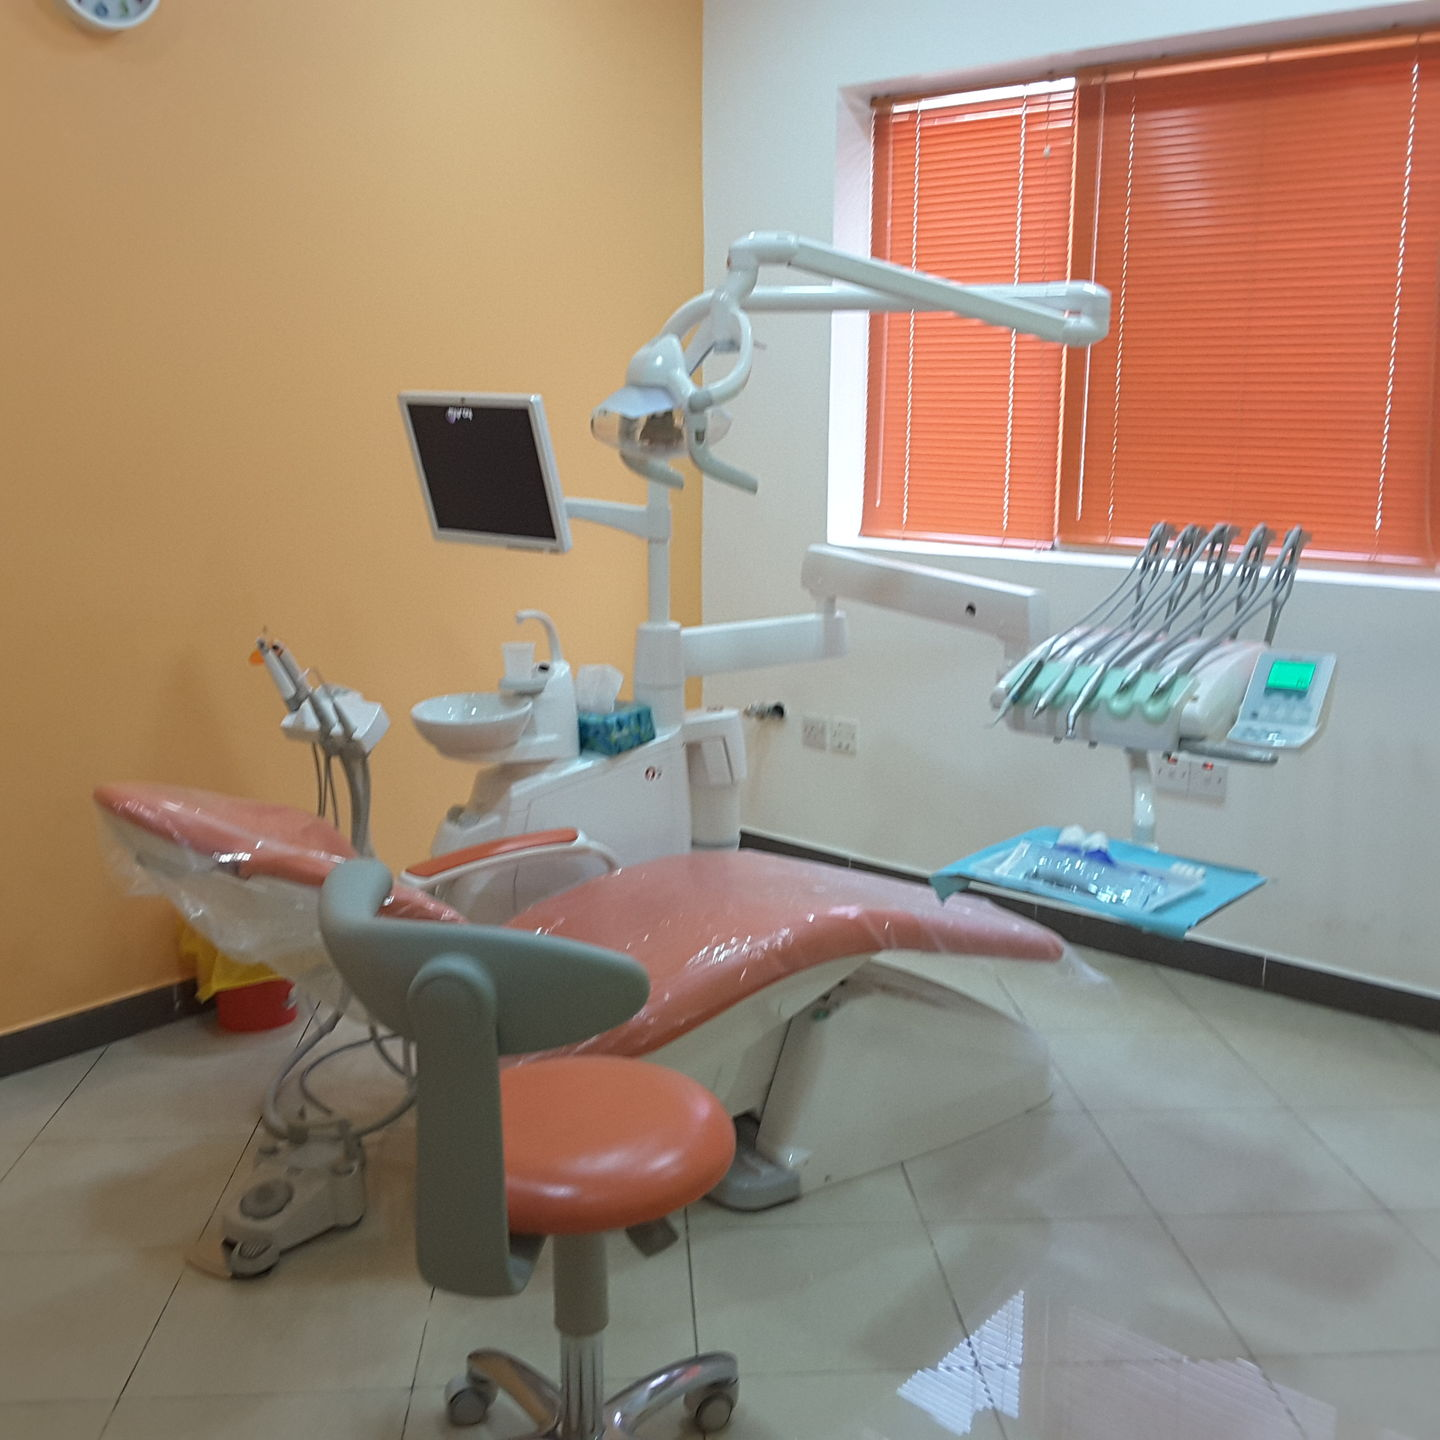 HiDubai-business-32-smile-stones-dental-care-center-beauty-wellness-health-specialty-clinics-al-nahda-2-dubai-2